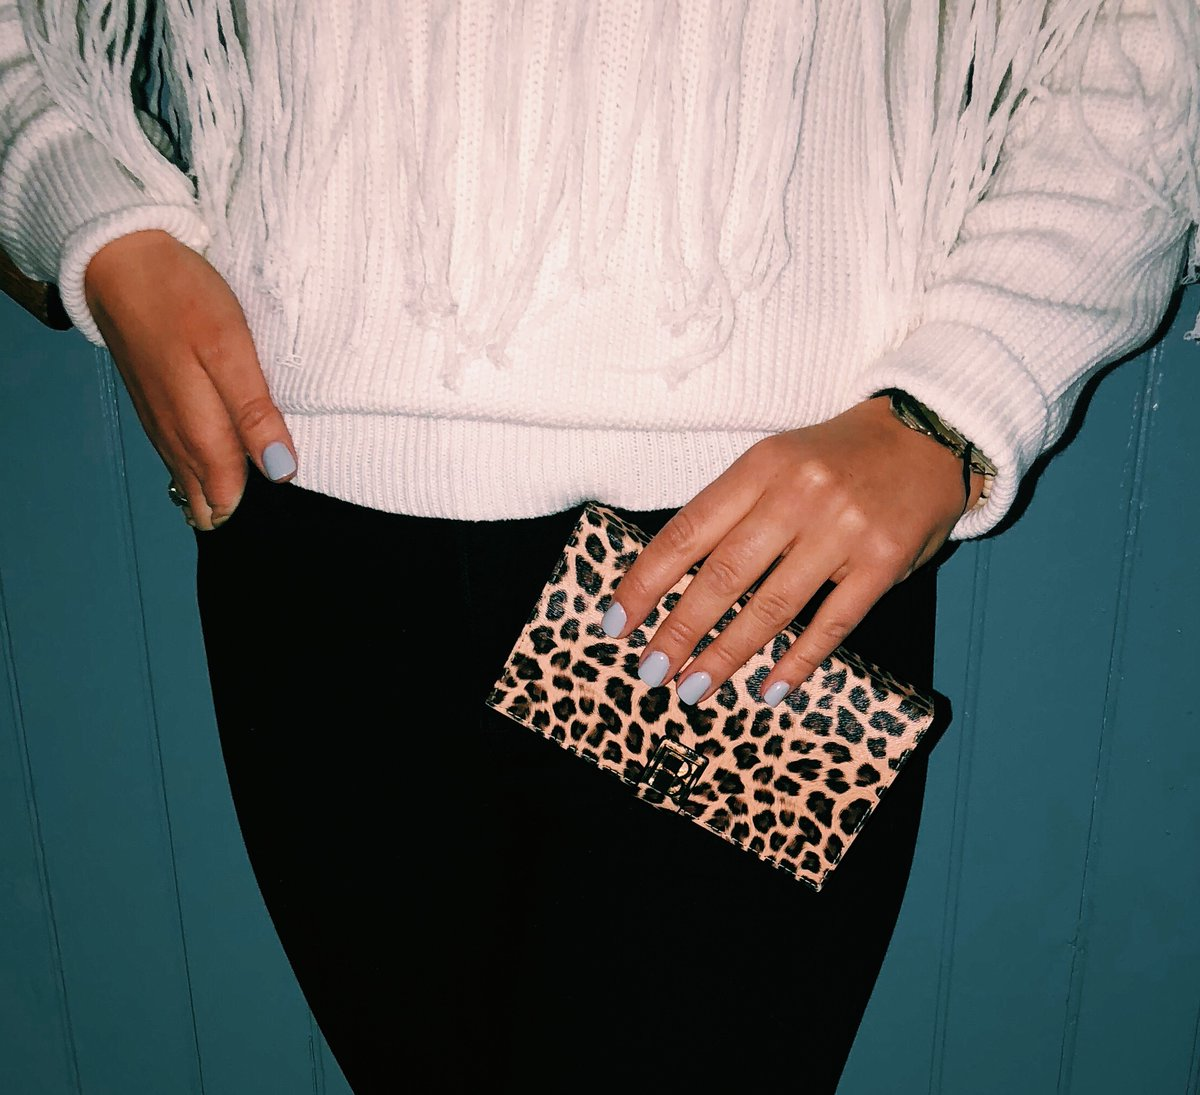 The perfect accessory for any outfit! #FIAC #onthego #busylifestyle #nightout #accessory #drinks #friends #beautyaccessory #fun #accessories #beautyblogger <br>http://pic.twitter.com/oUZaAcP1nV